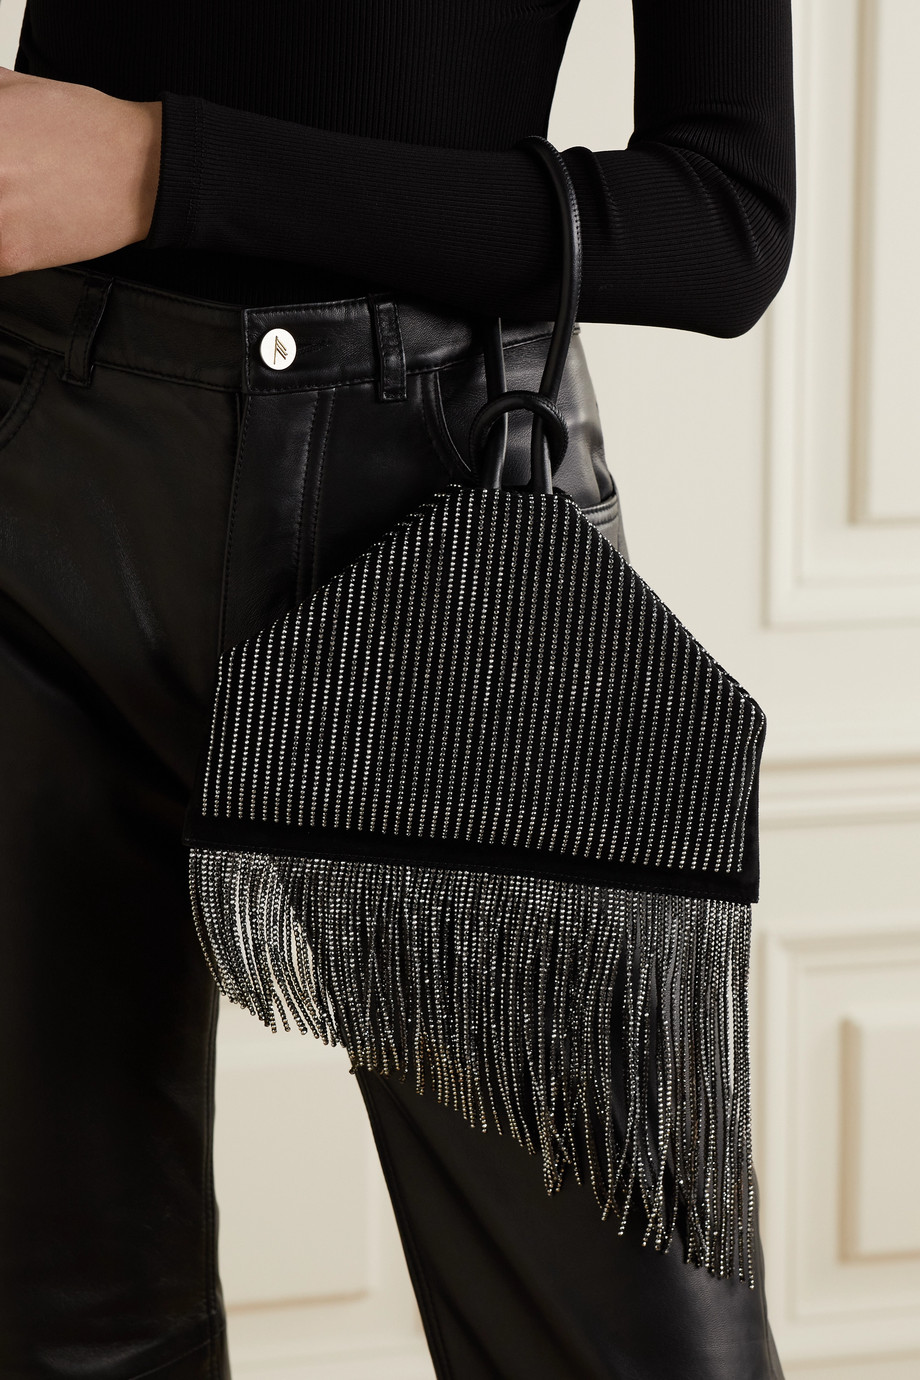 Christian Louboutin Berlinguinio leather-trimmed crystal-embellished suede clutch